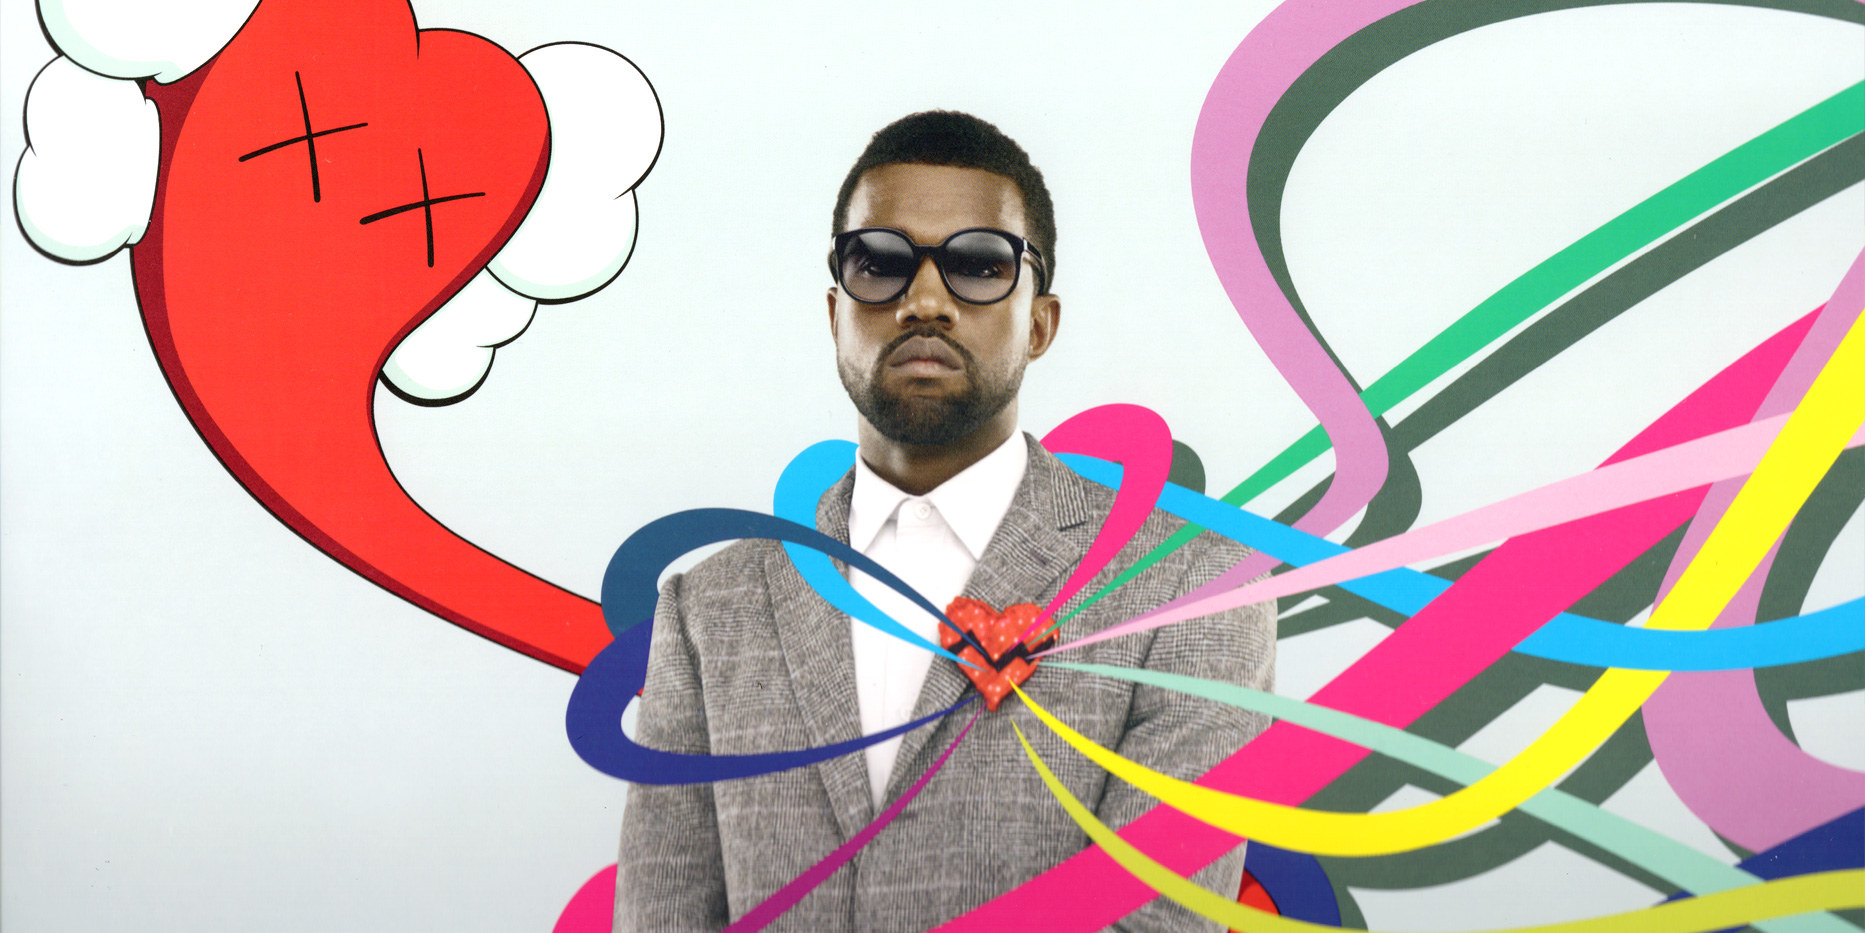 Watch The Documentary On Why Kanye West Made 808s Heartbreak